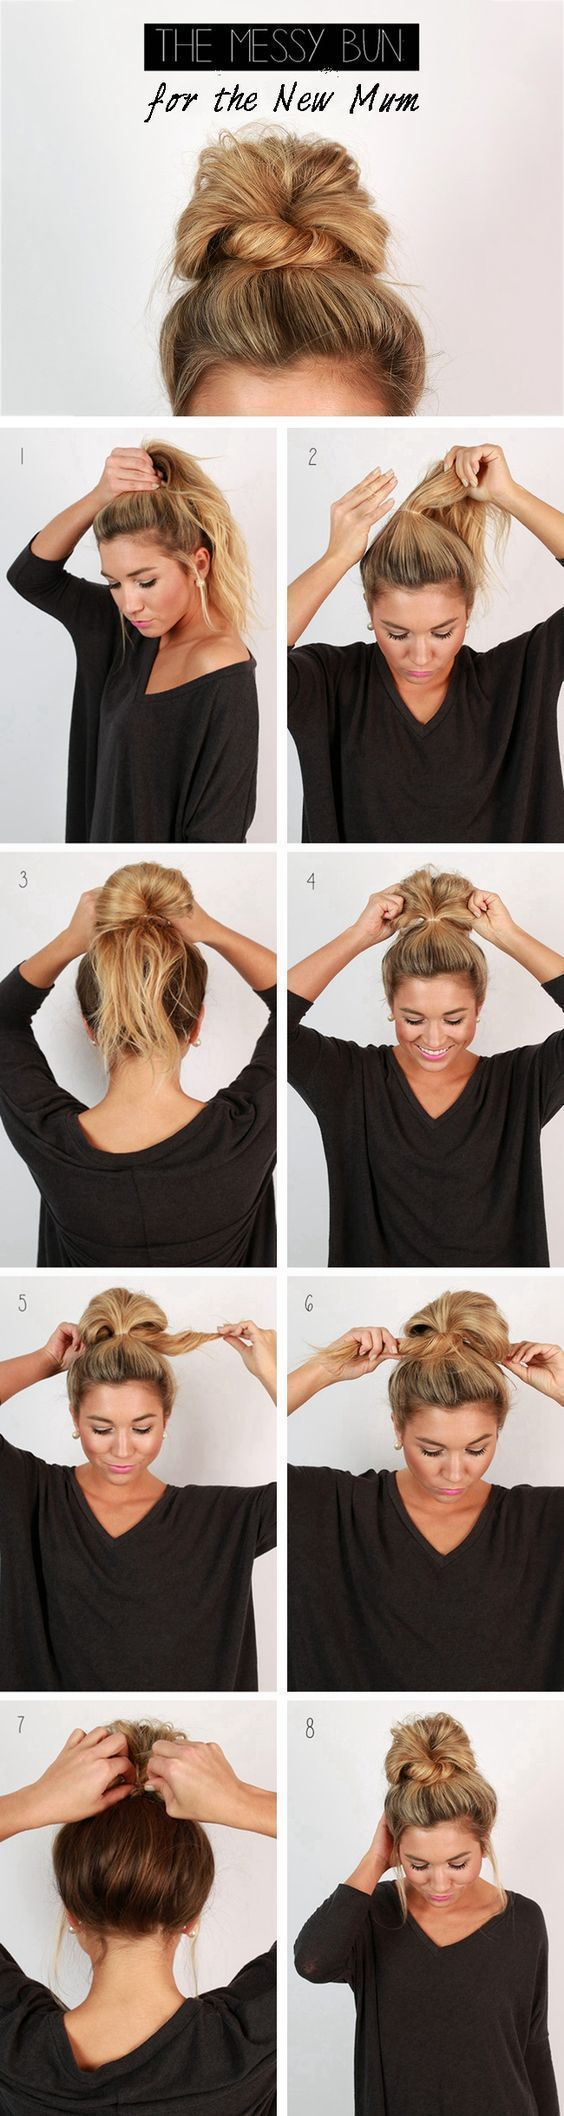 Pin By Patti Buse On Hair In 2021 Hair Styles Long Hair Styles Medium Length Hair Styles